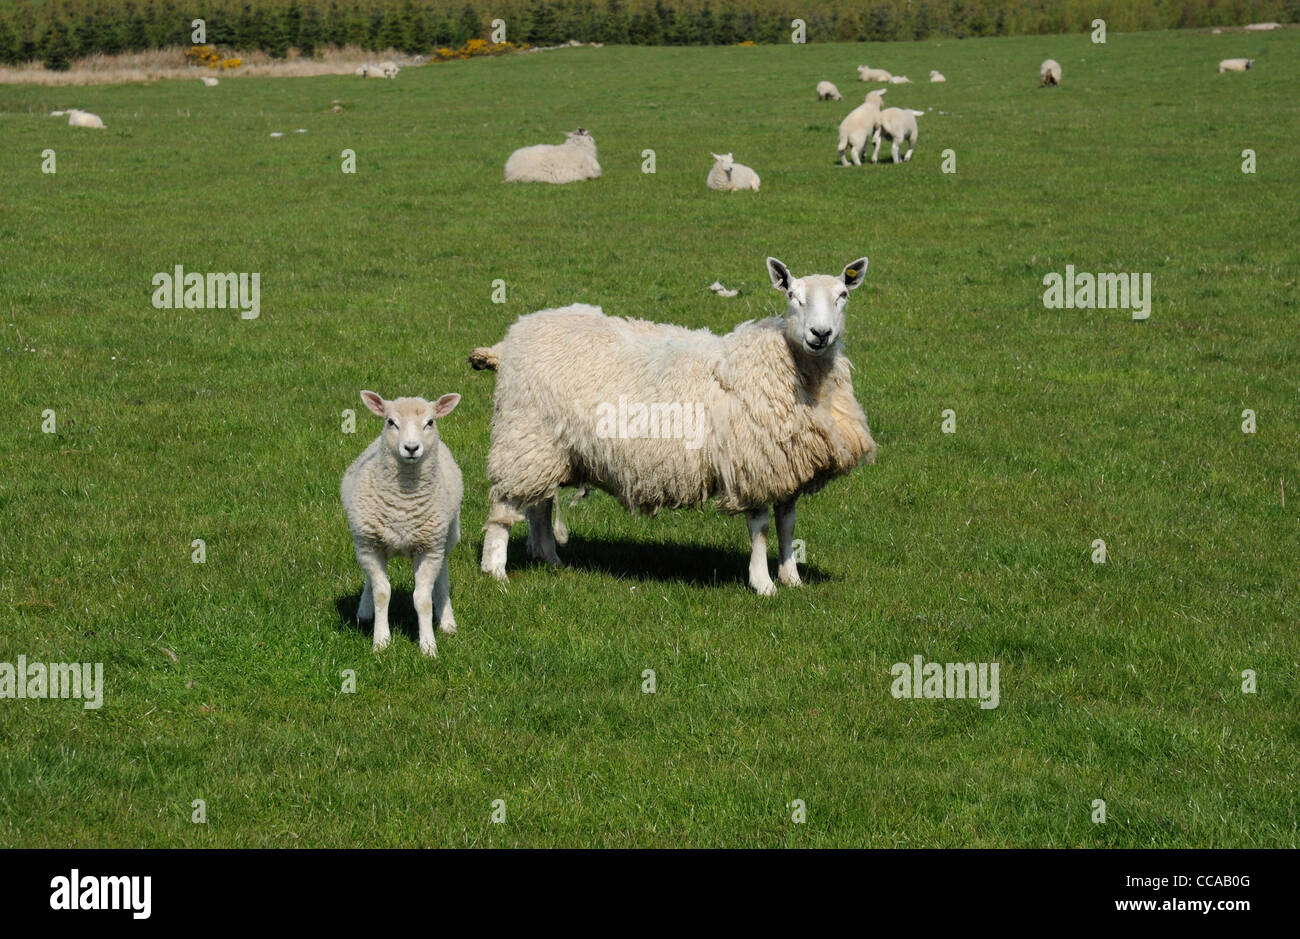 Sheep. Ewe and lamb in field, Dumfries and Galloway, Scotland, UK - Stock Image